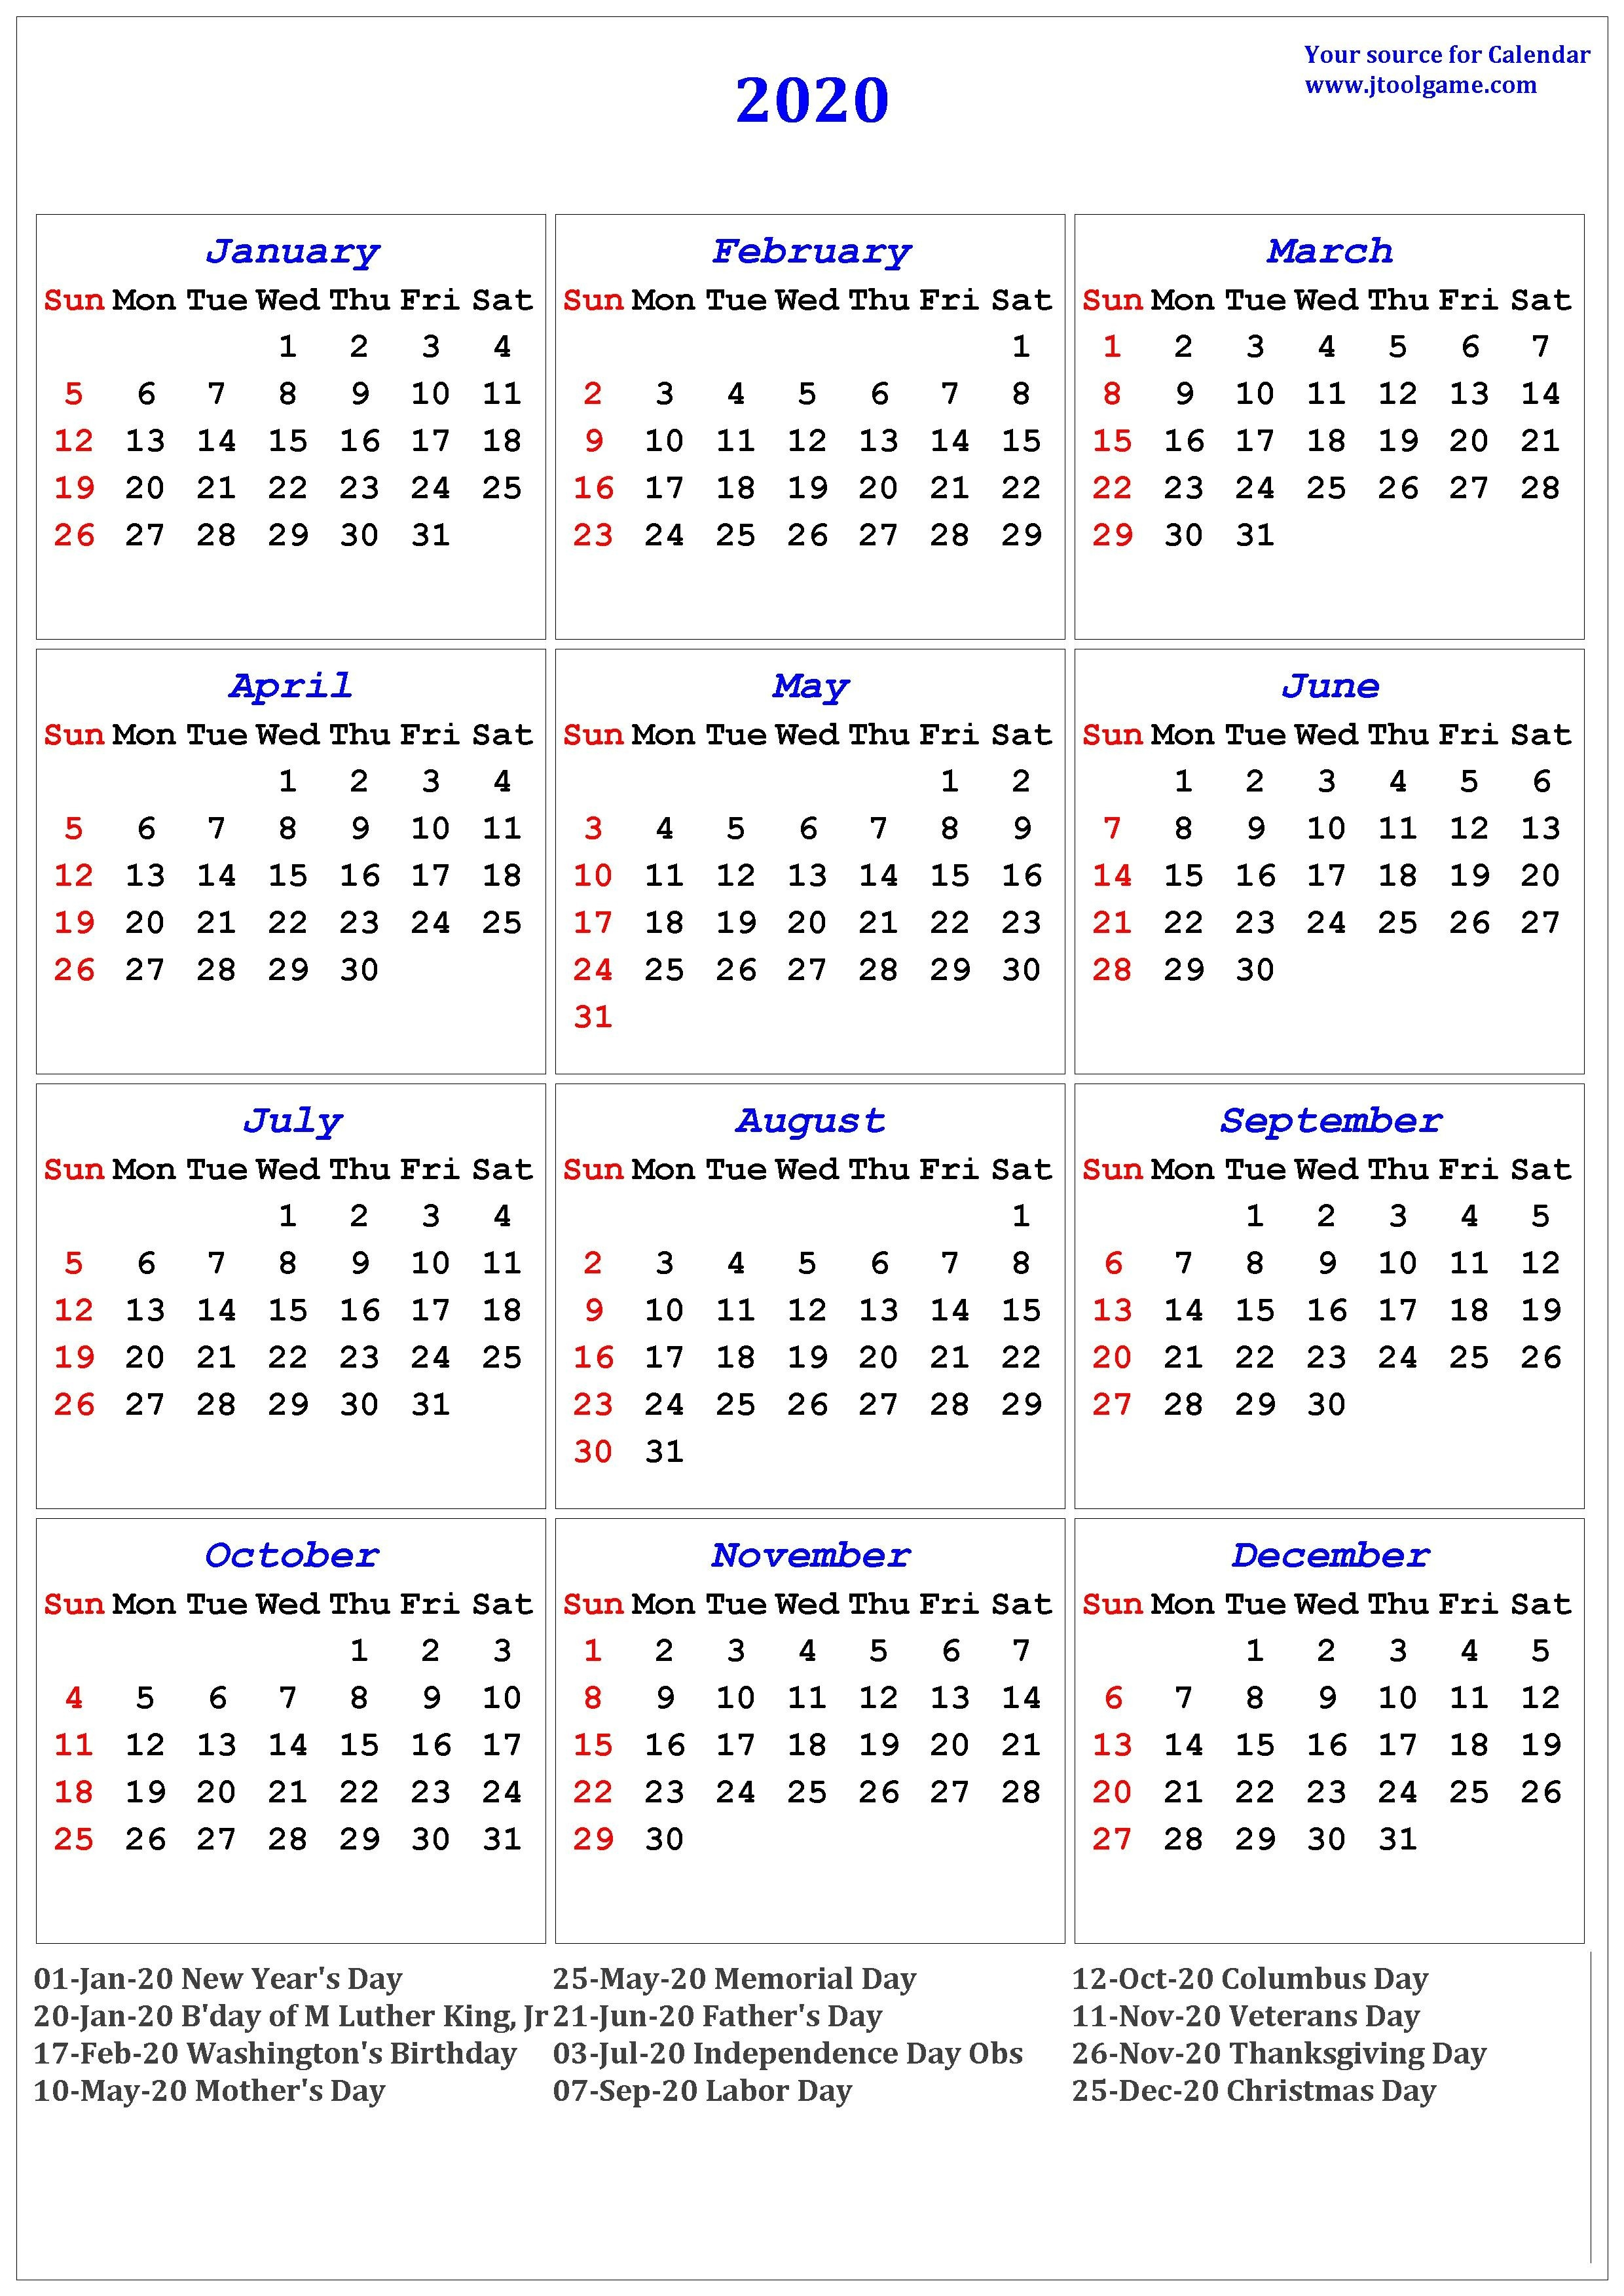 2020 Calendar - Printable Calendar. 2020 Calendar In-January 2020 Ka Calendar